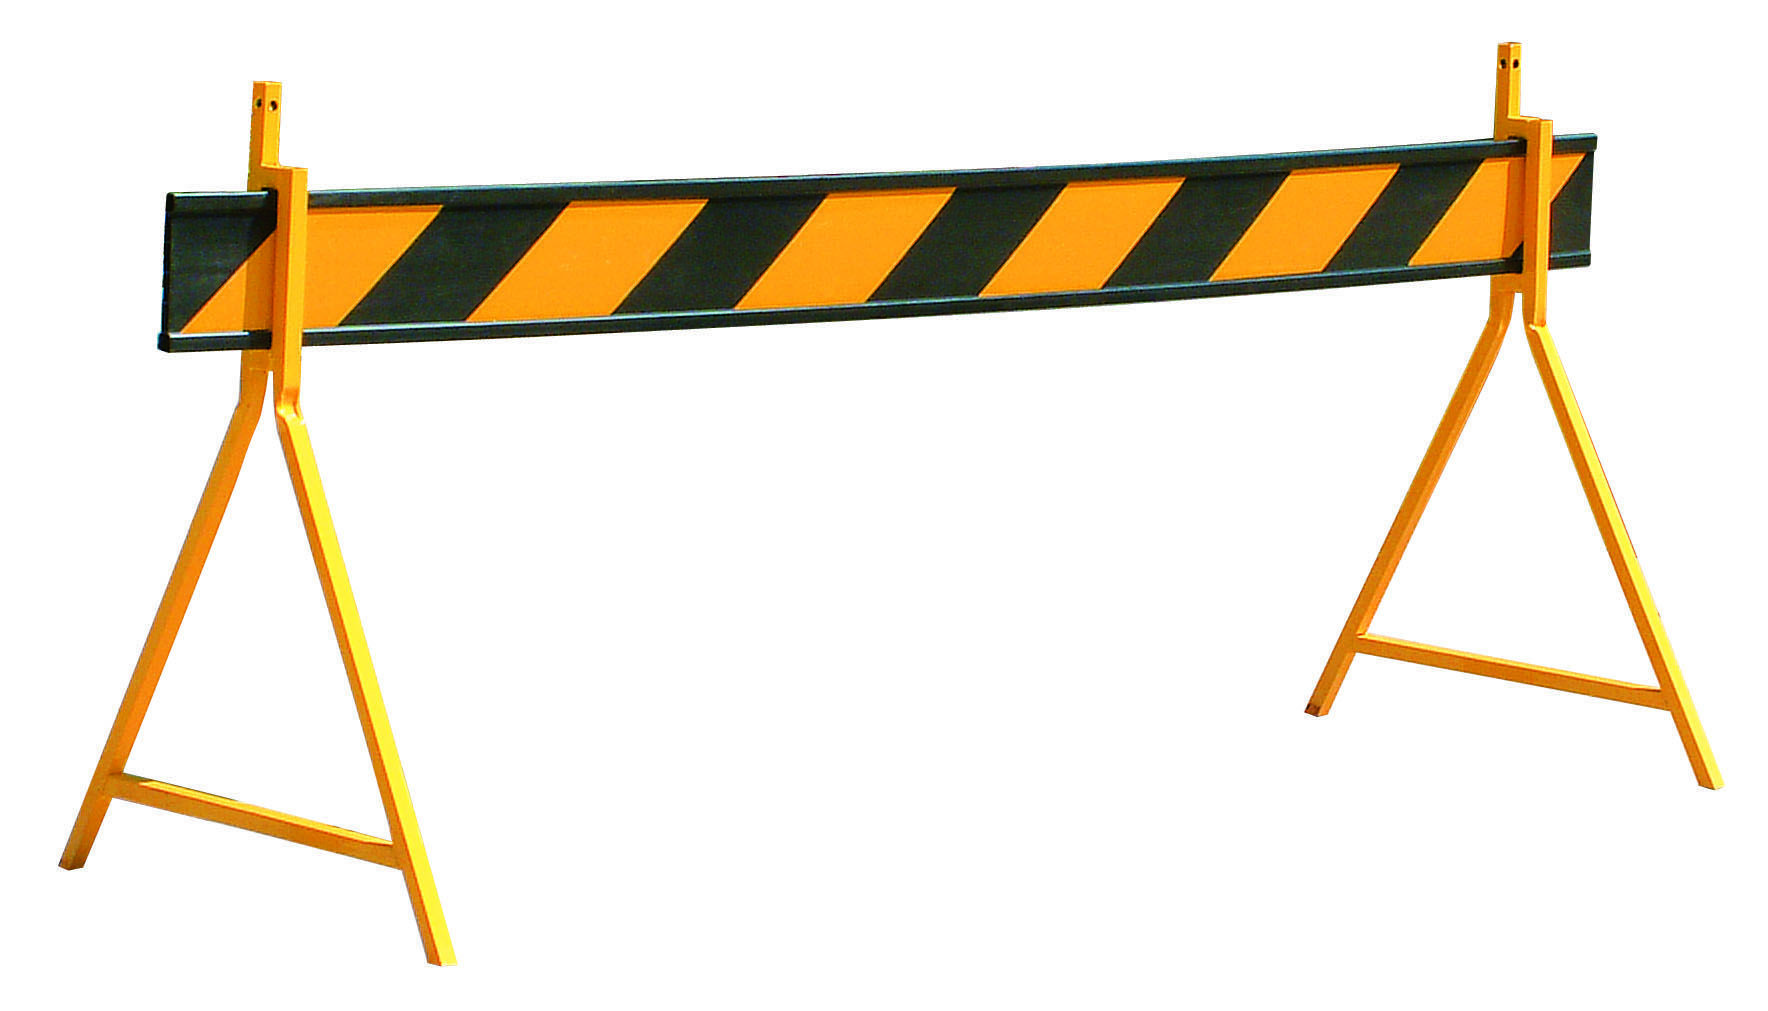 Heavy Duty Reflective Barrier Board with Yellow Reflective